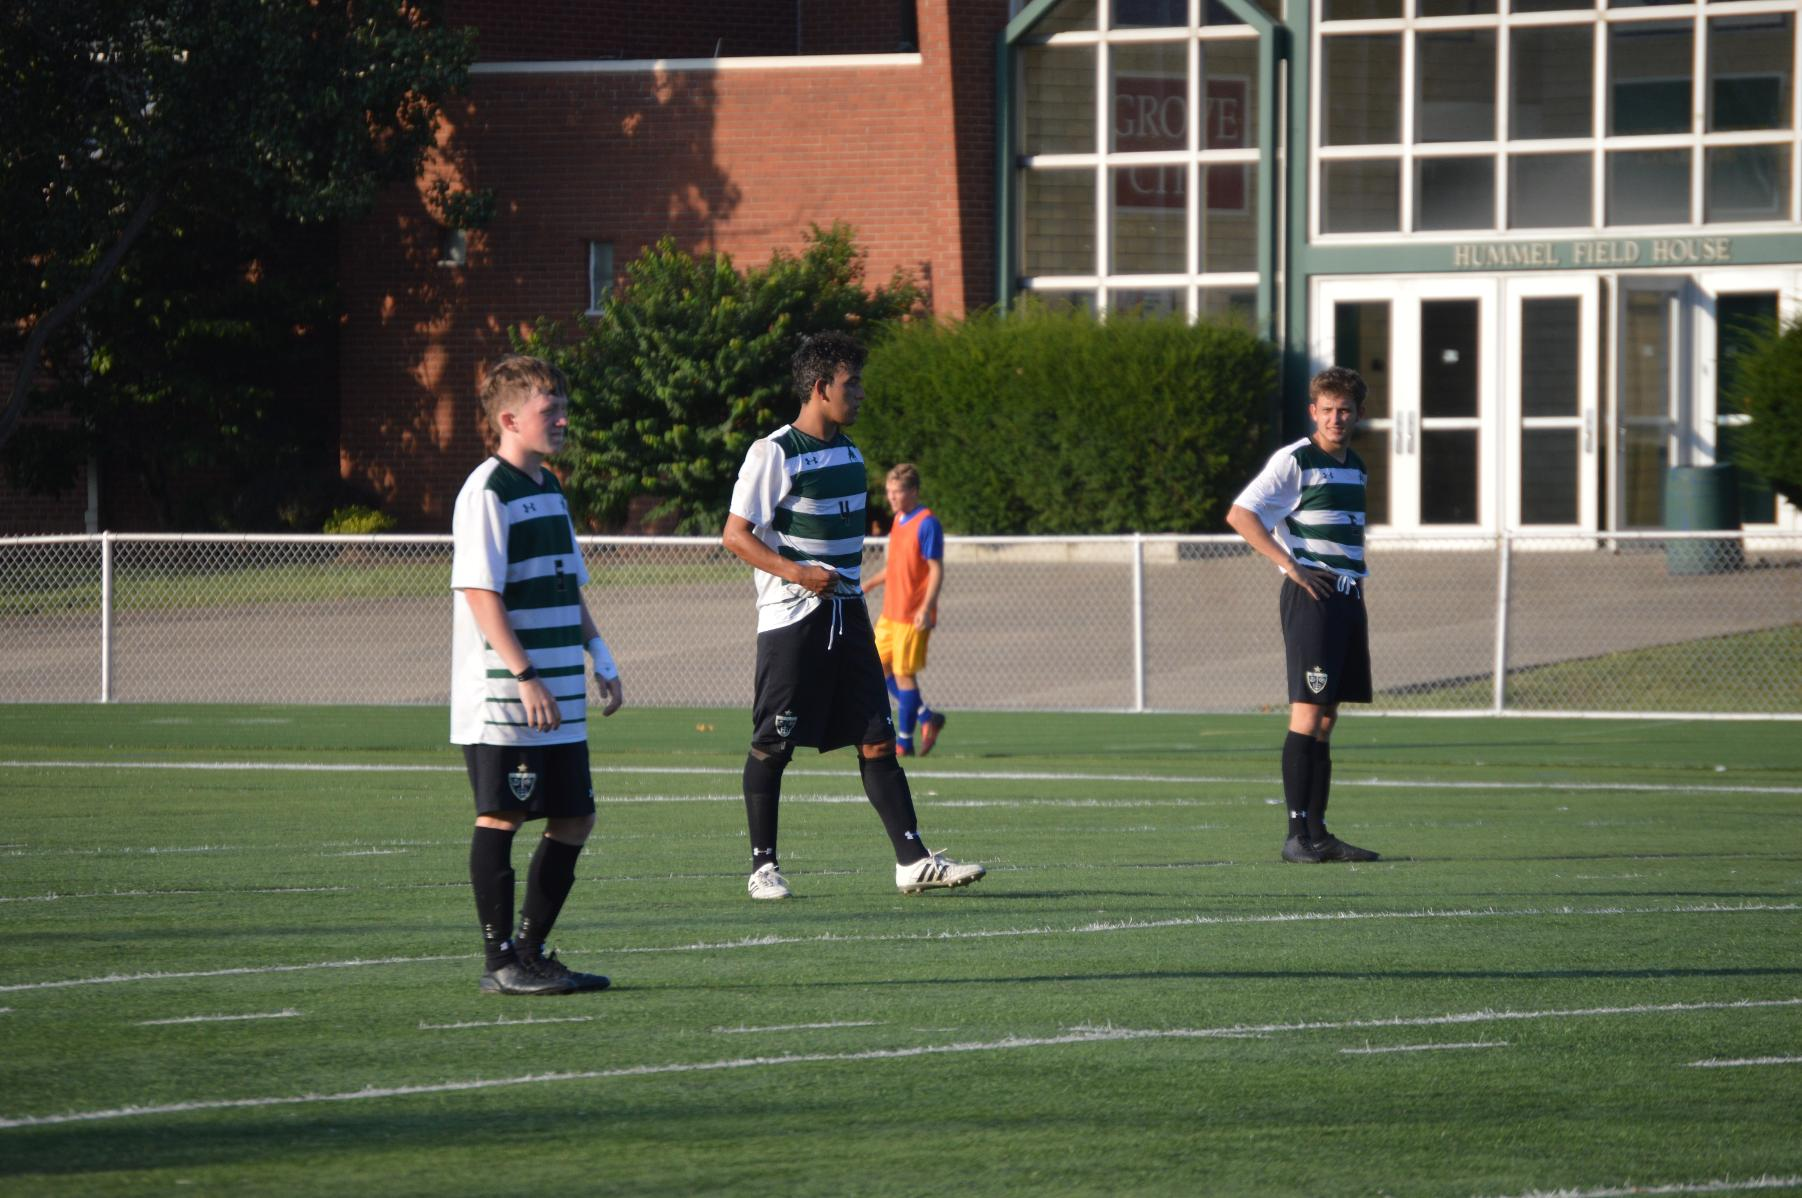 Bethany dealt 3-2 loss to Mount Aloysius